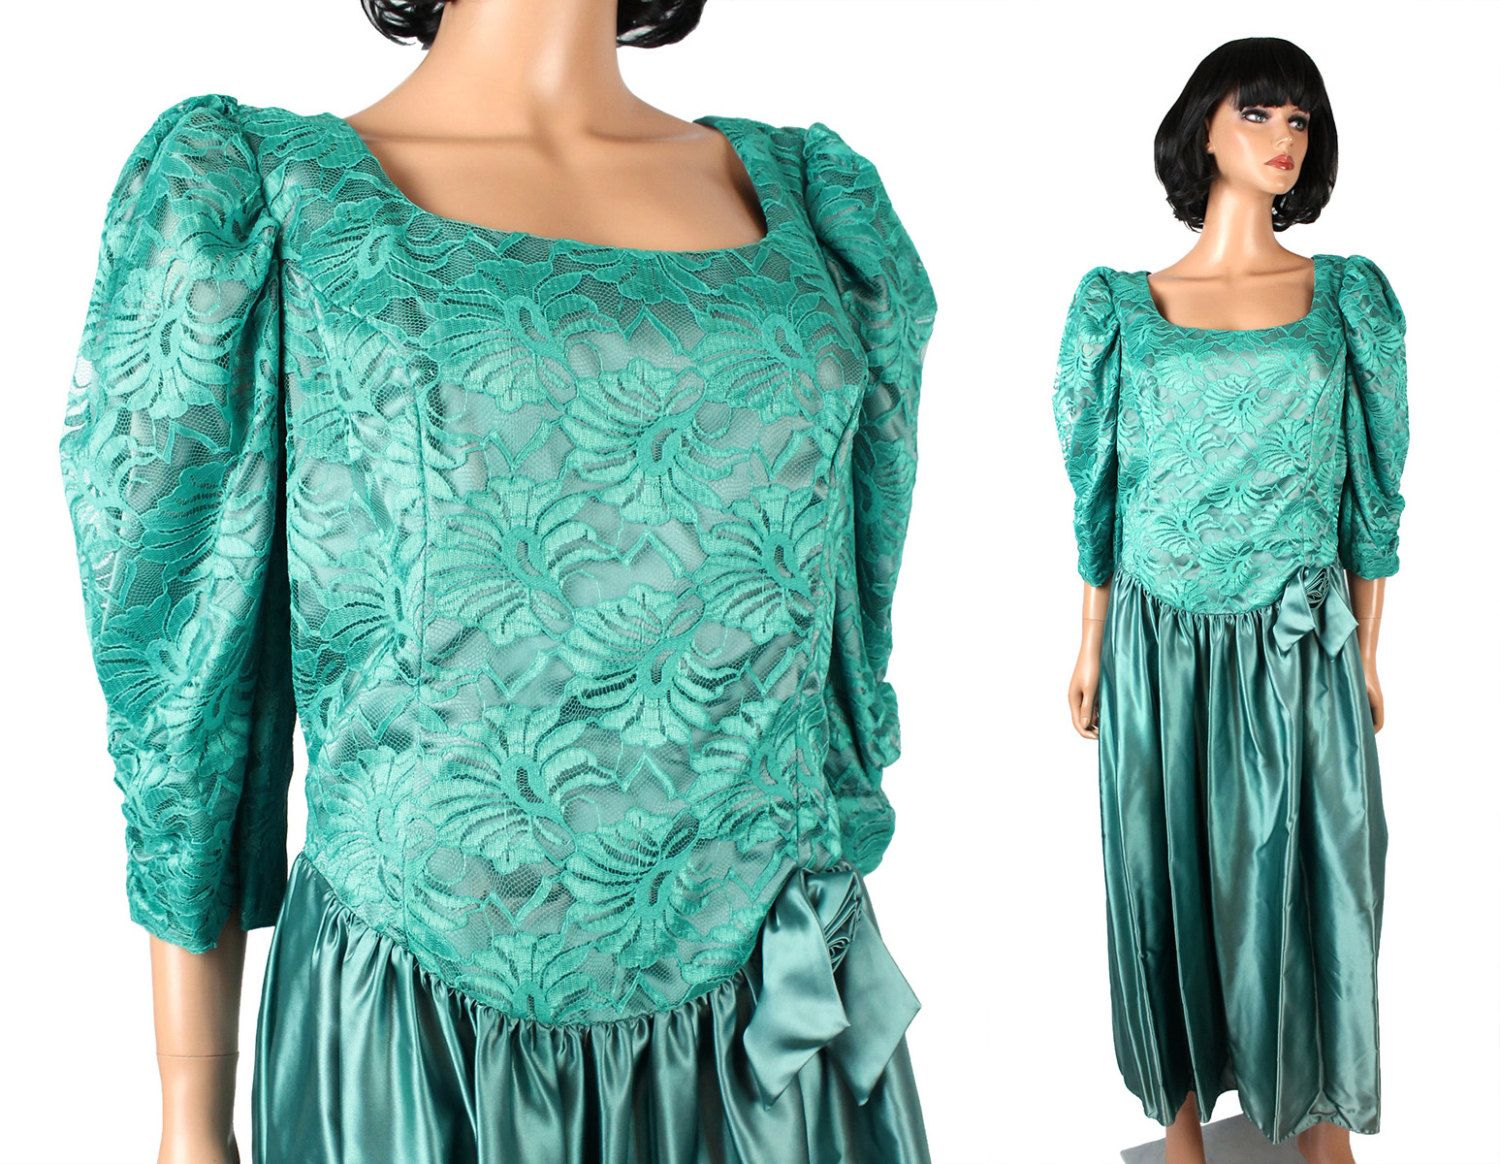 80s Prom Dress 2X XXL 20 Teal Sage Green Lace Satin Gown Costume ...